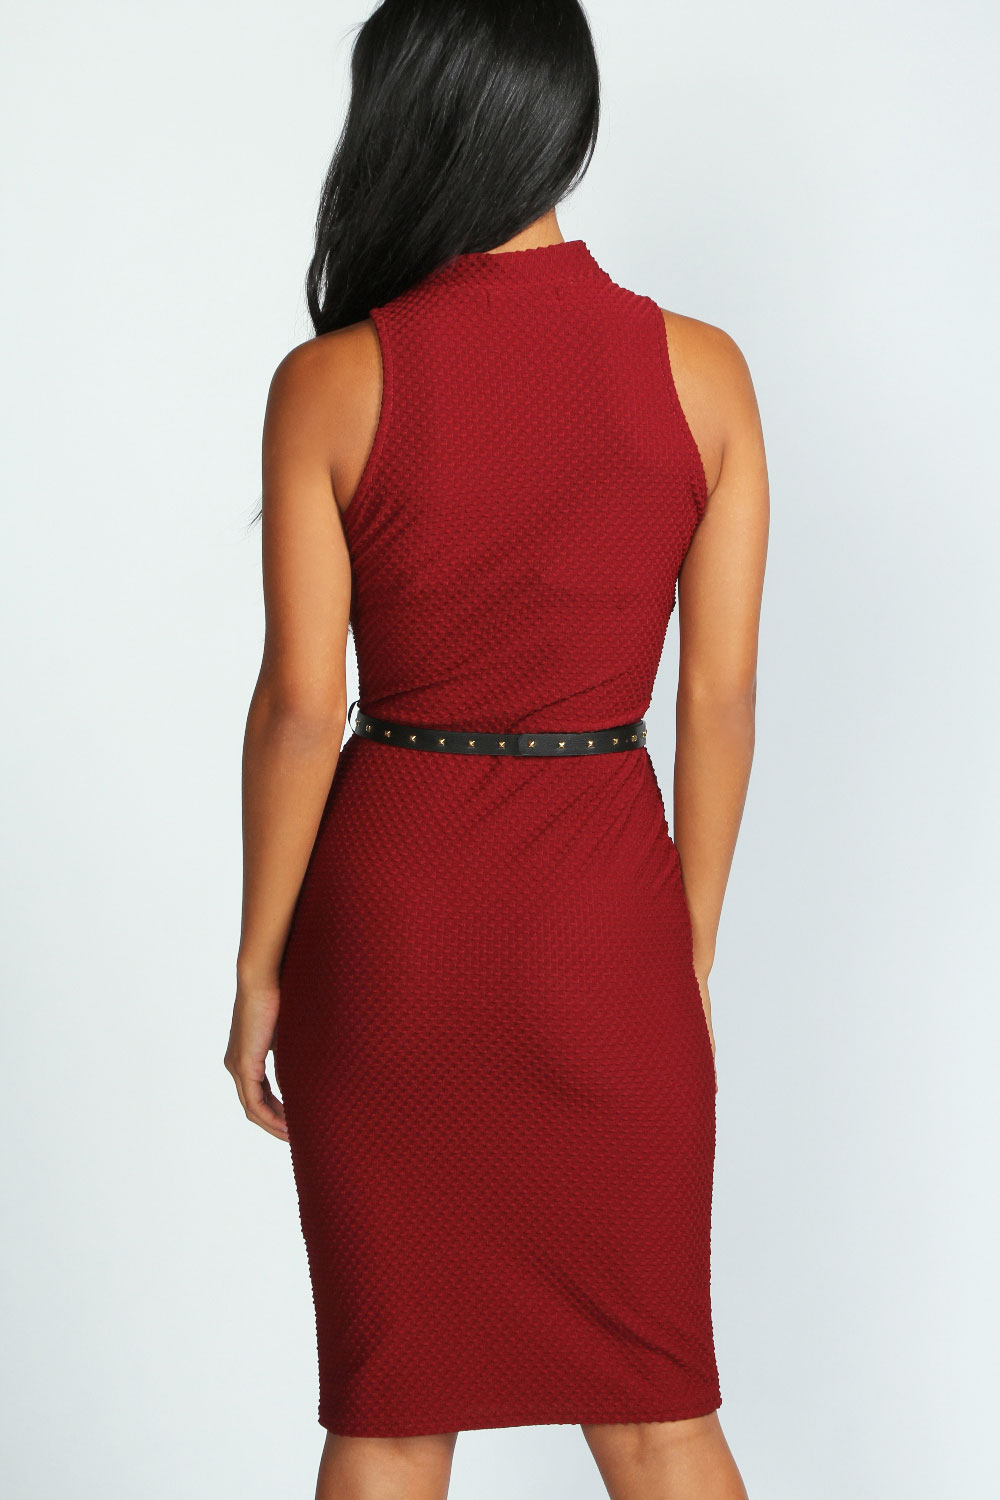 Berry Toni Textured Fabric Stud Belt Midi Dress